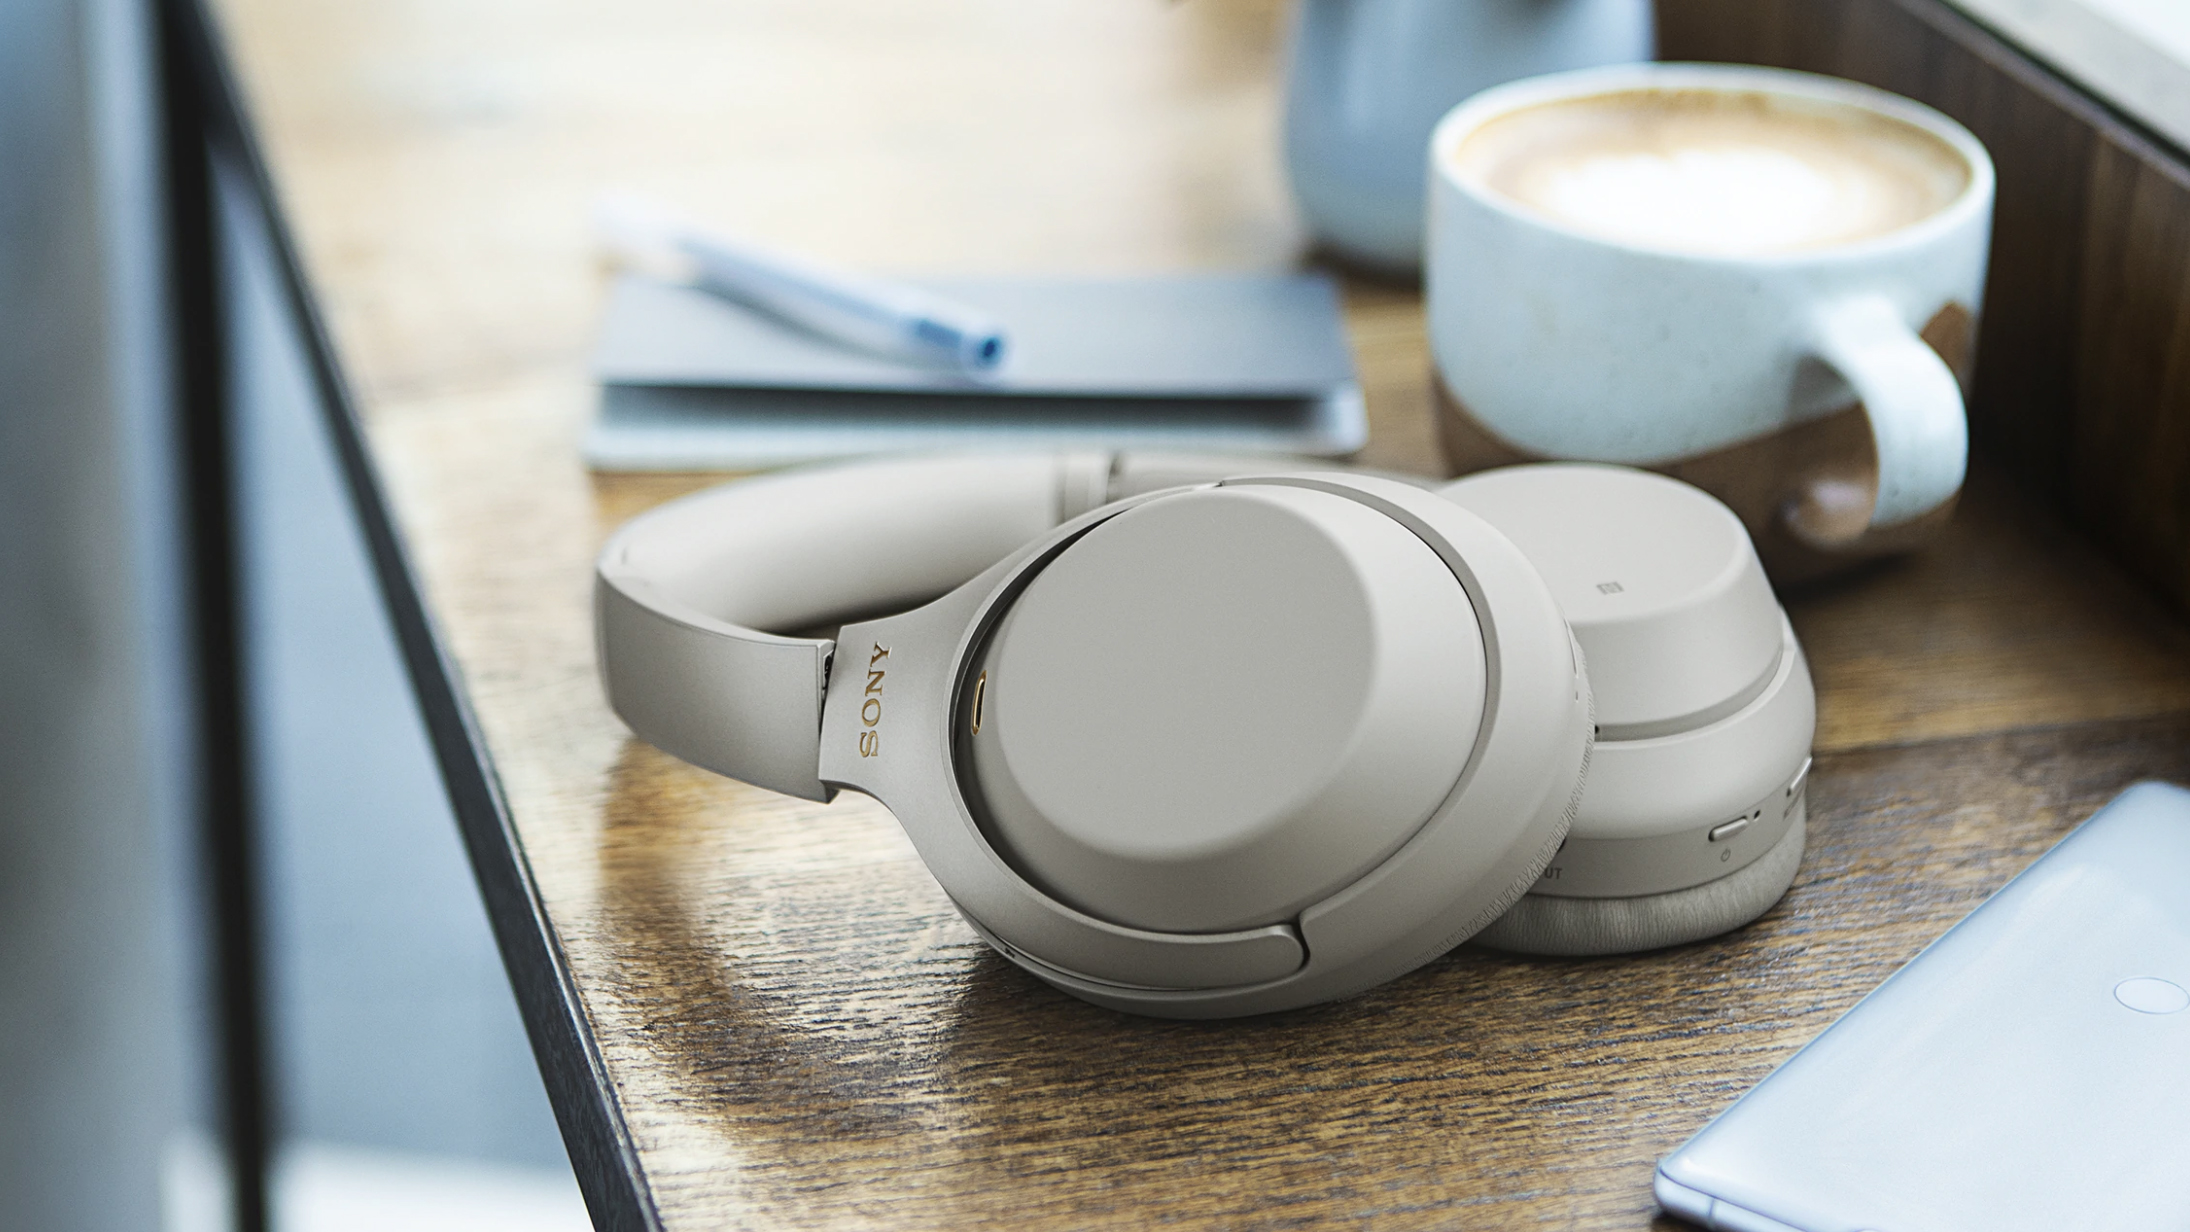 Sony WH1000XM3 noise canceling headphones